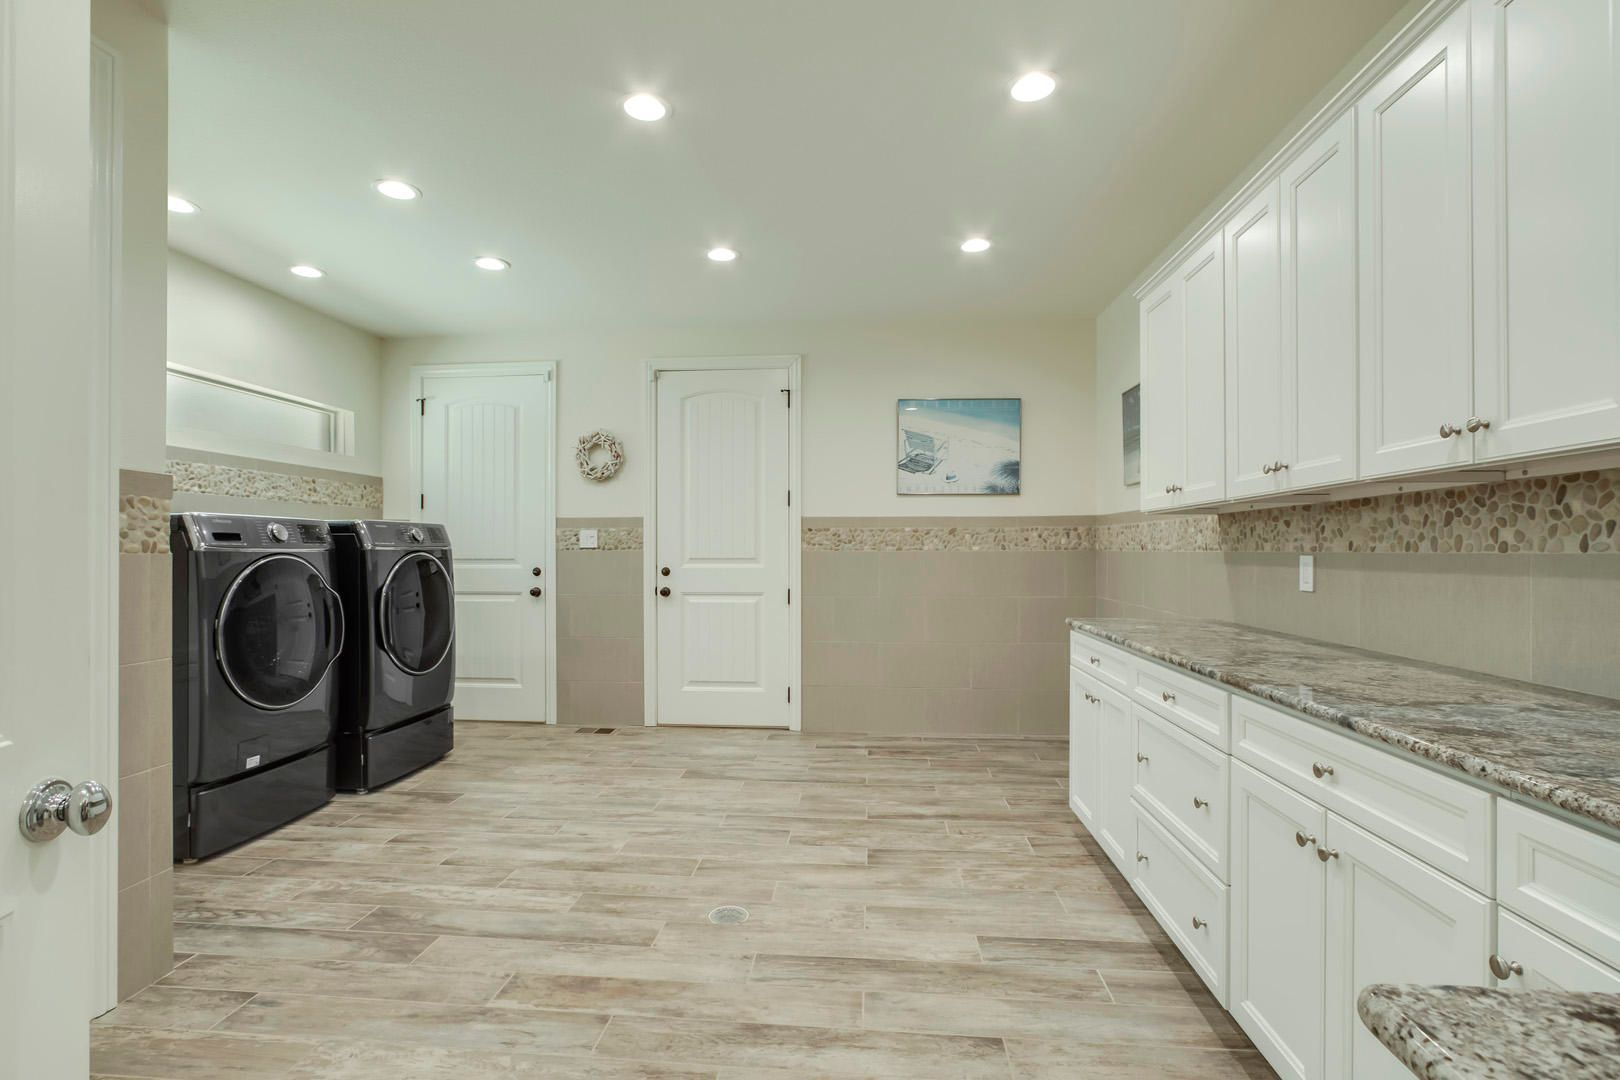 29_CabotRidgeLane_12815_Laundry-Mudroom0